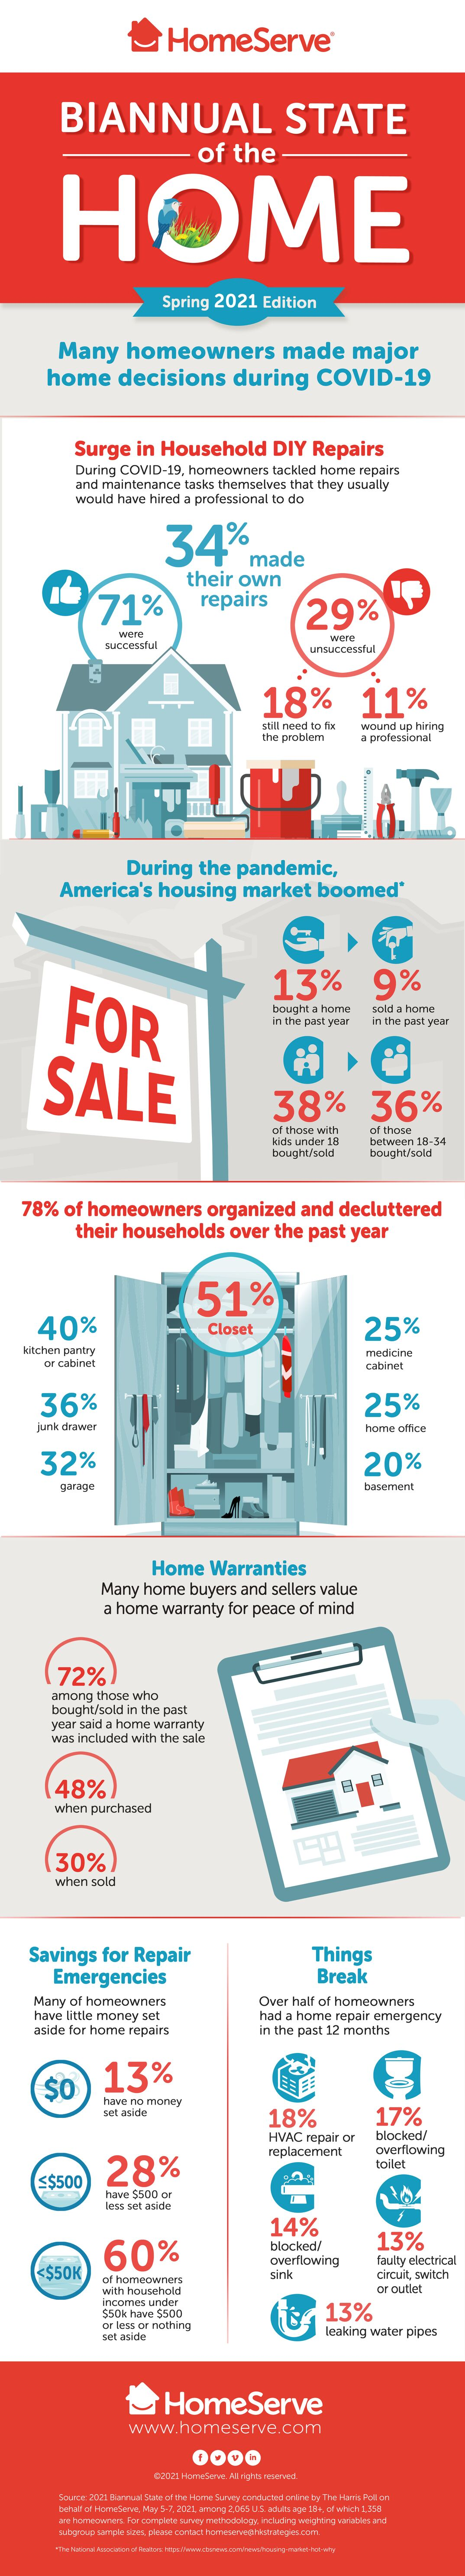 Biannual state of the home infographic